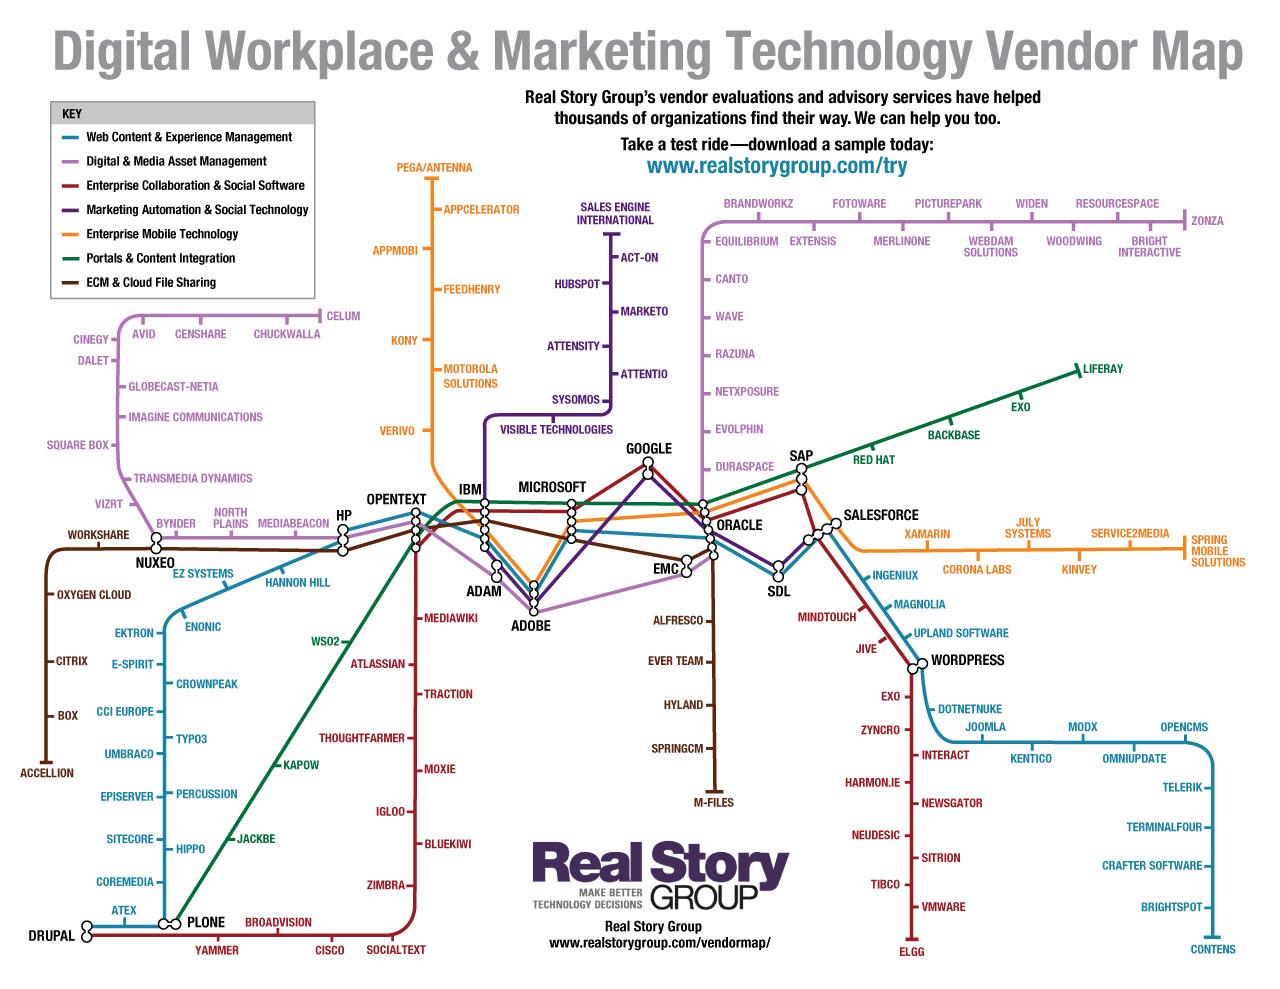 Subway Map Marketing.Digital Workplace And Marketing Technology Map 2015 Blog Real